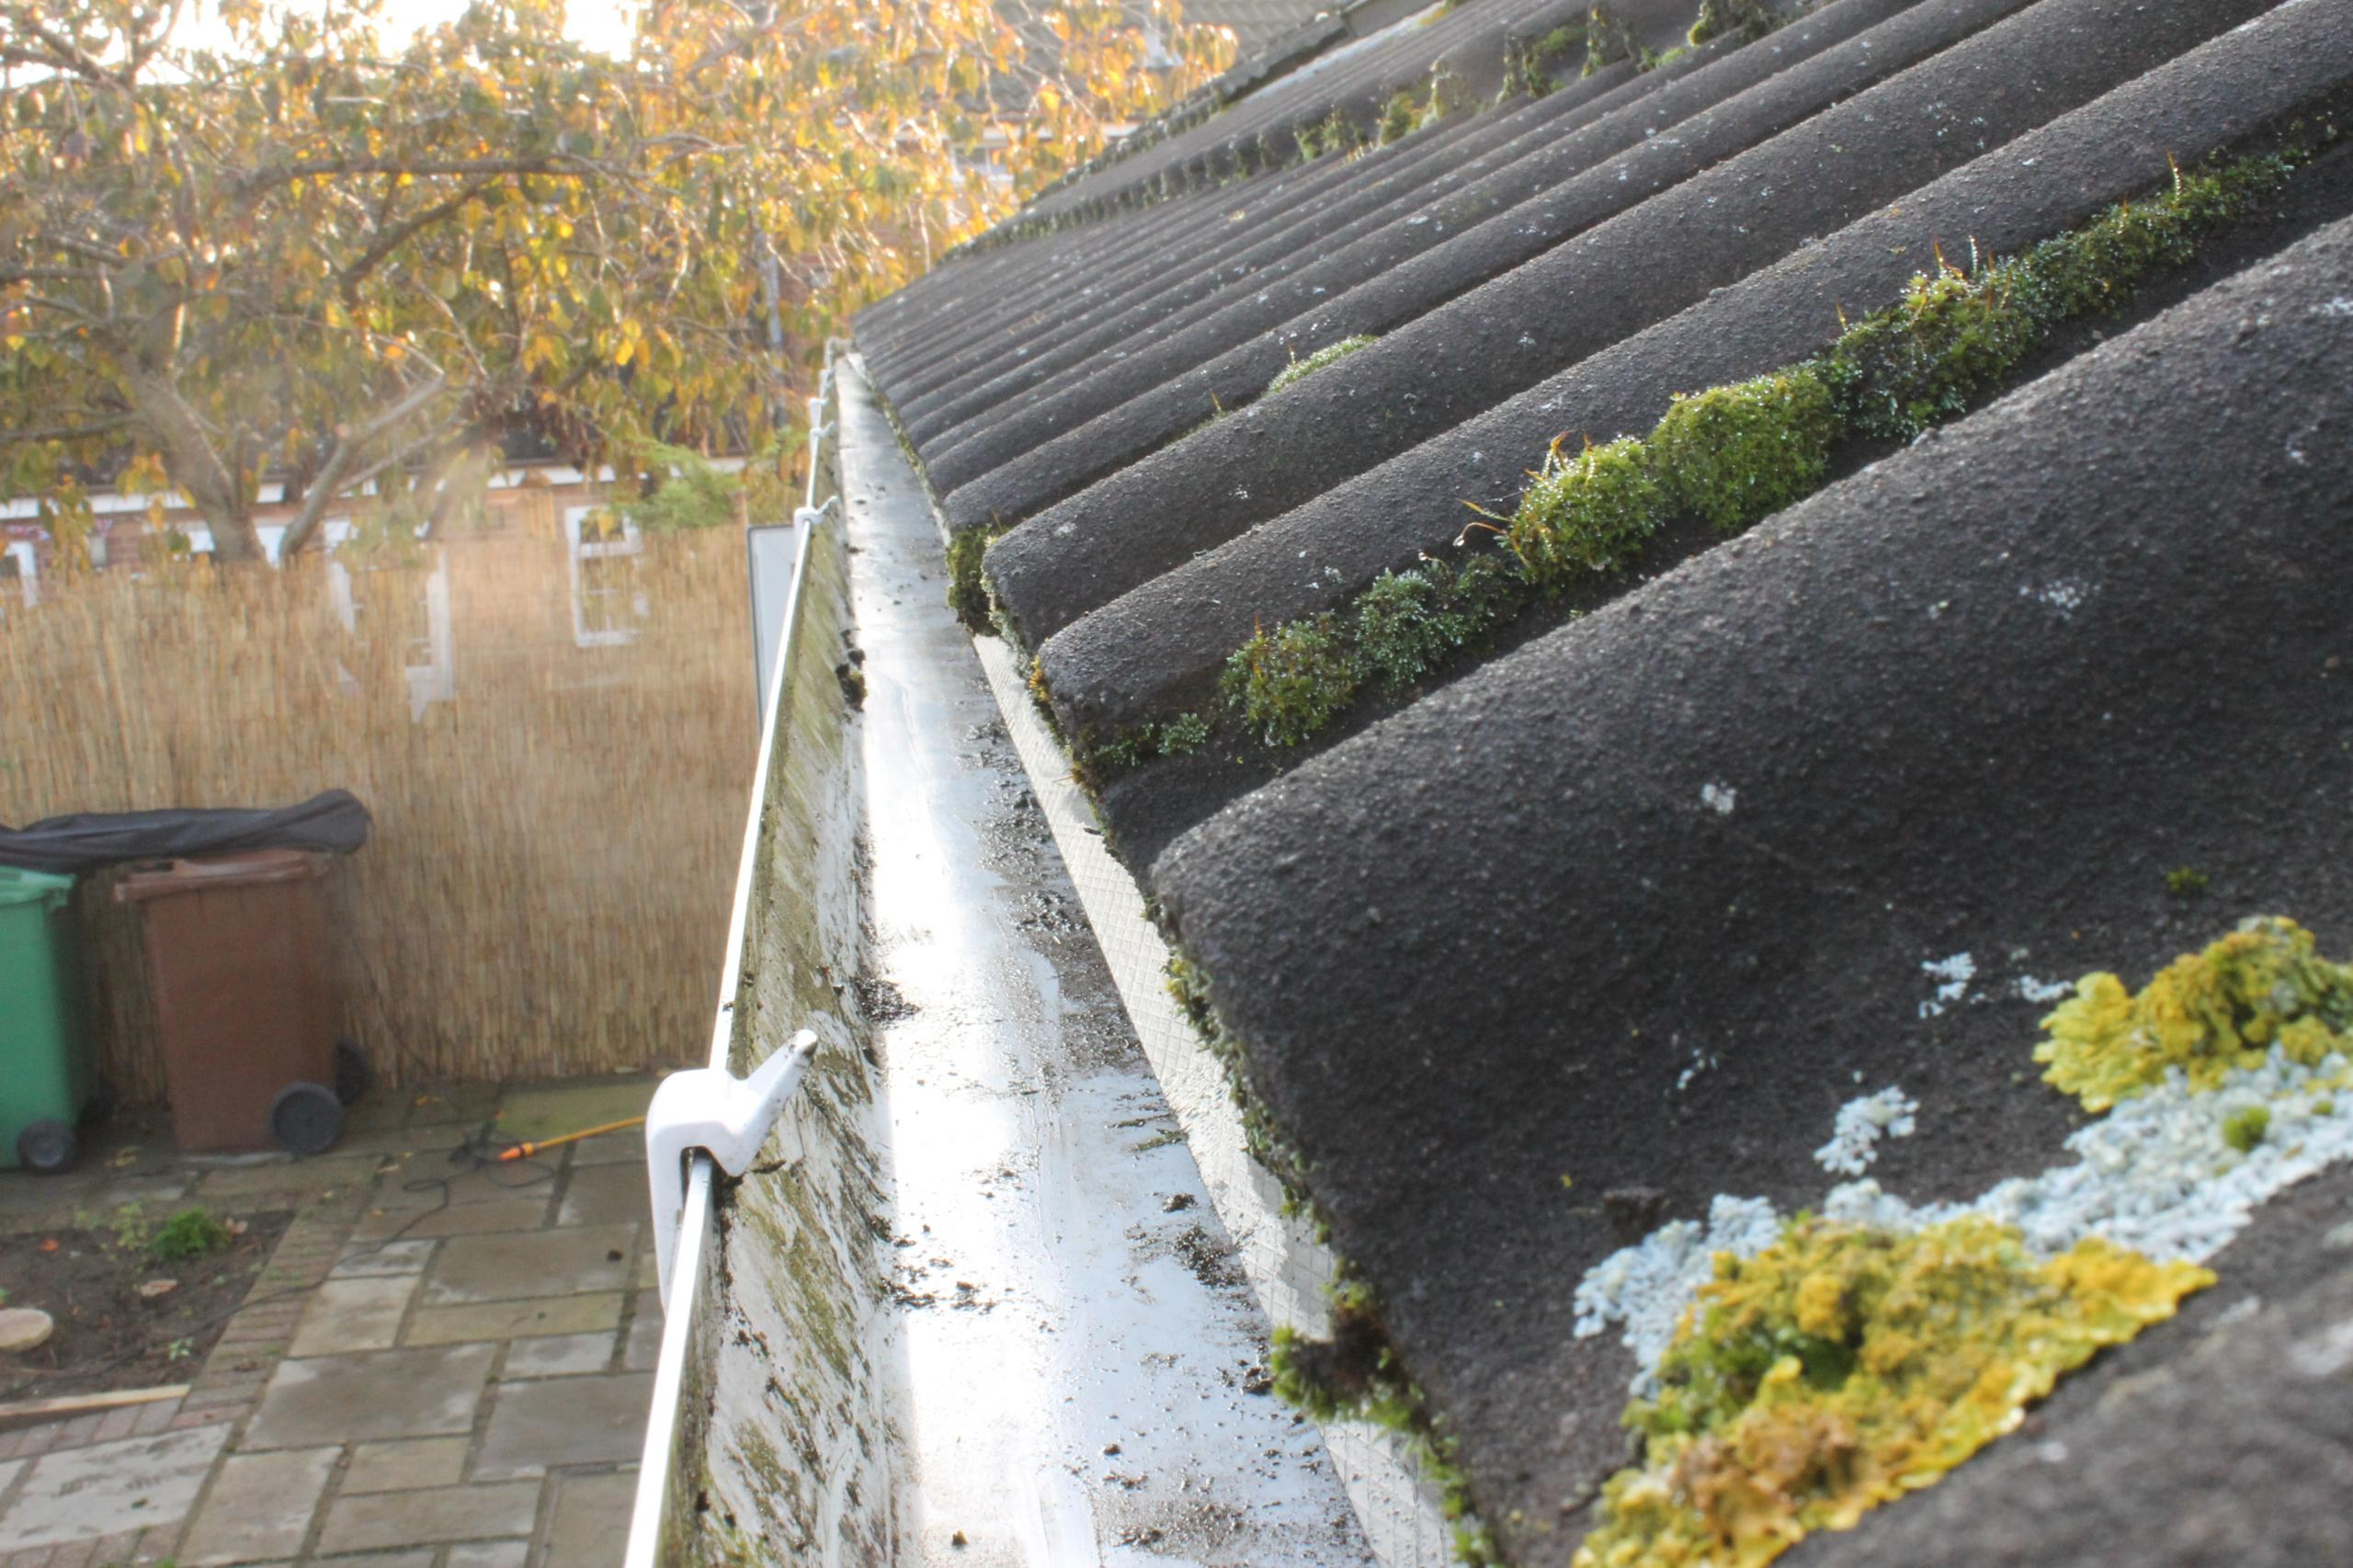 r - GUTTER CLEARING